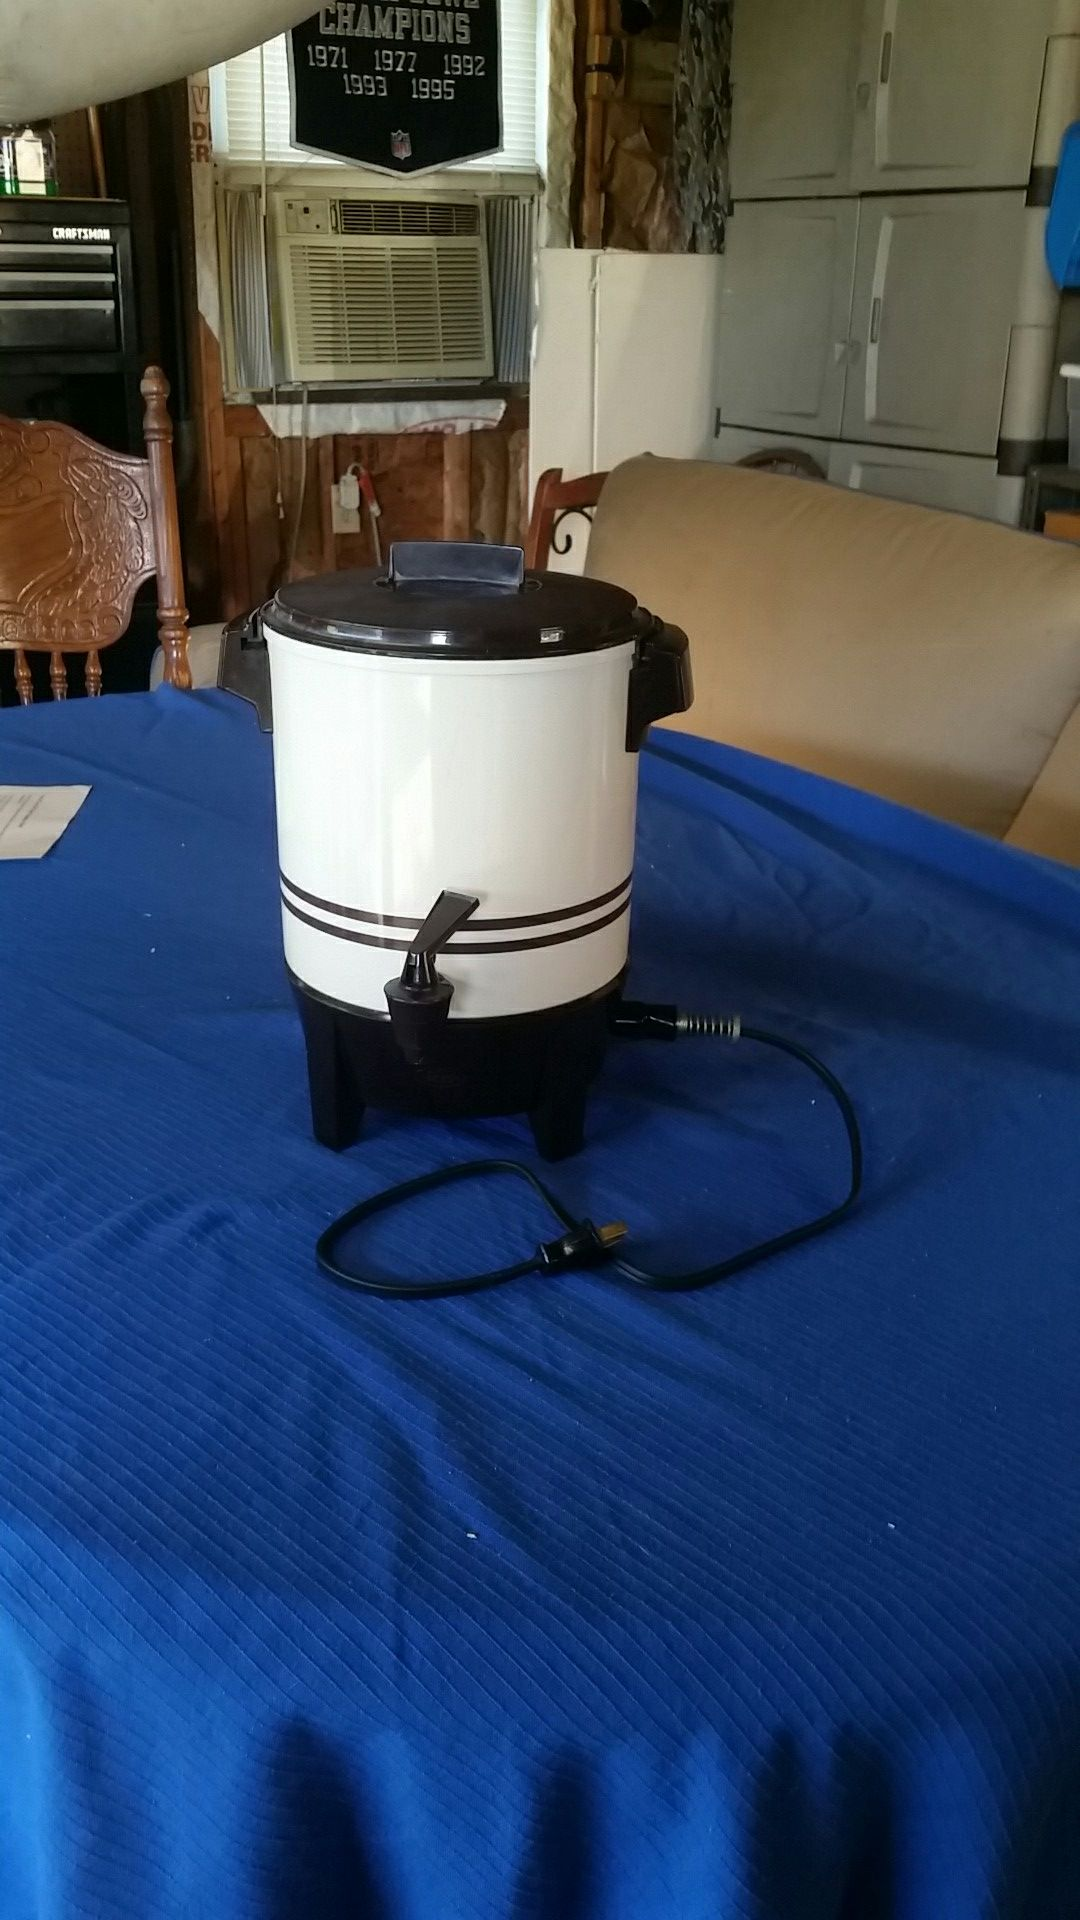 West Bend Coffee Percolator (12-22 cups)